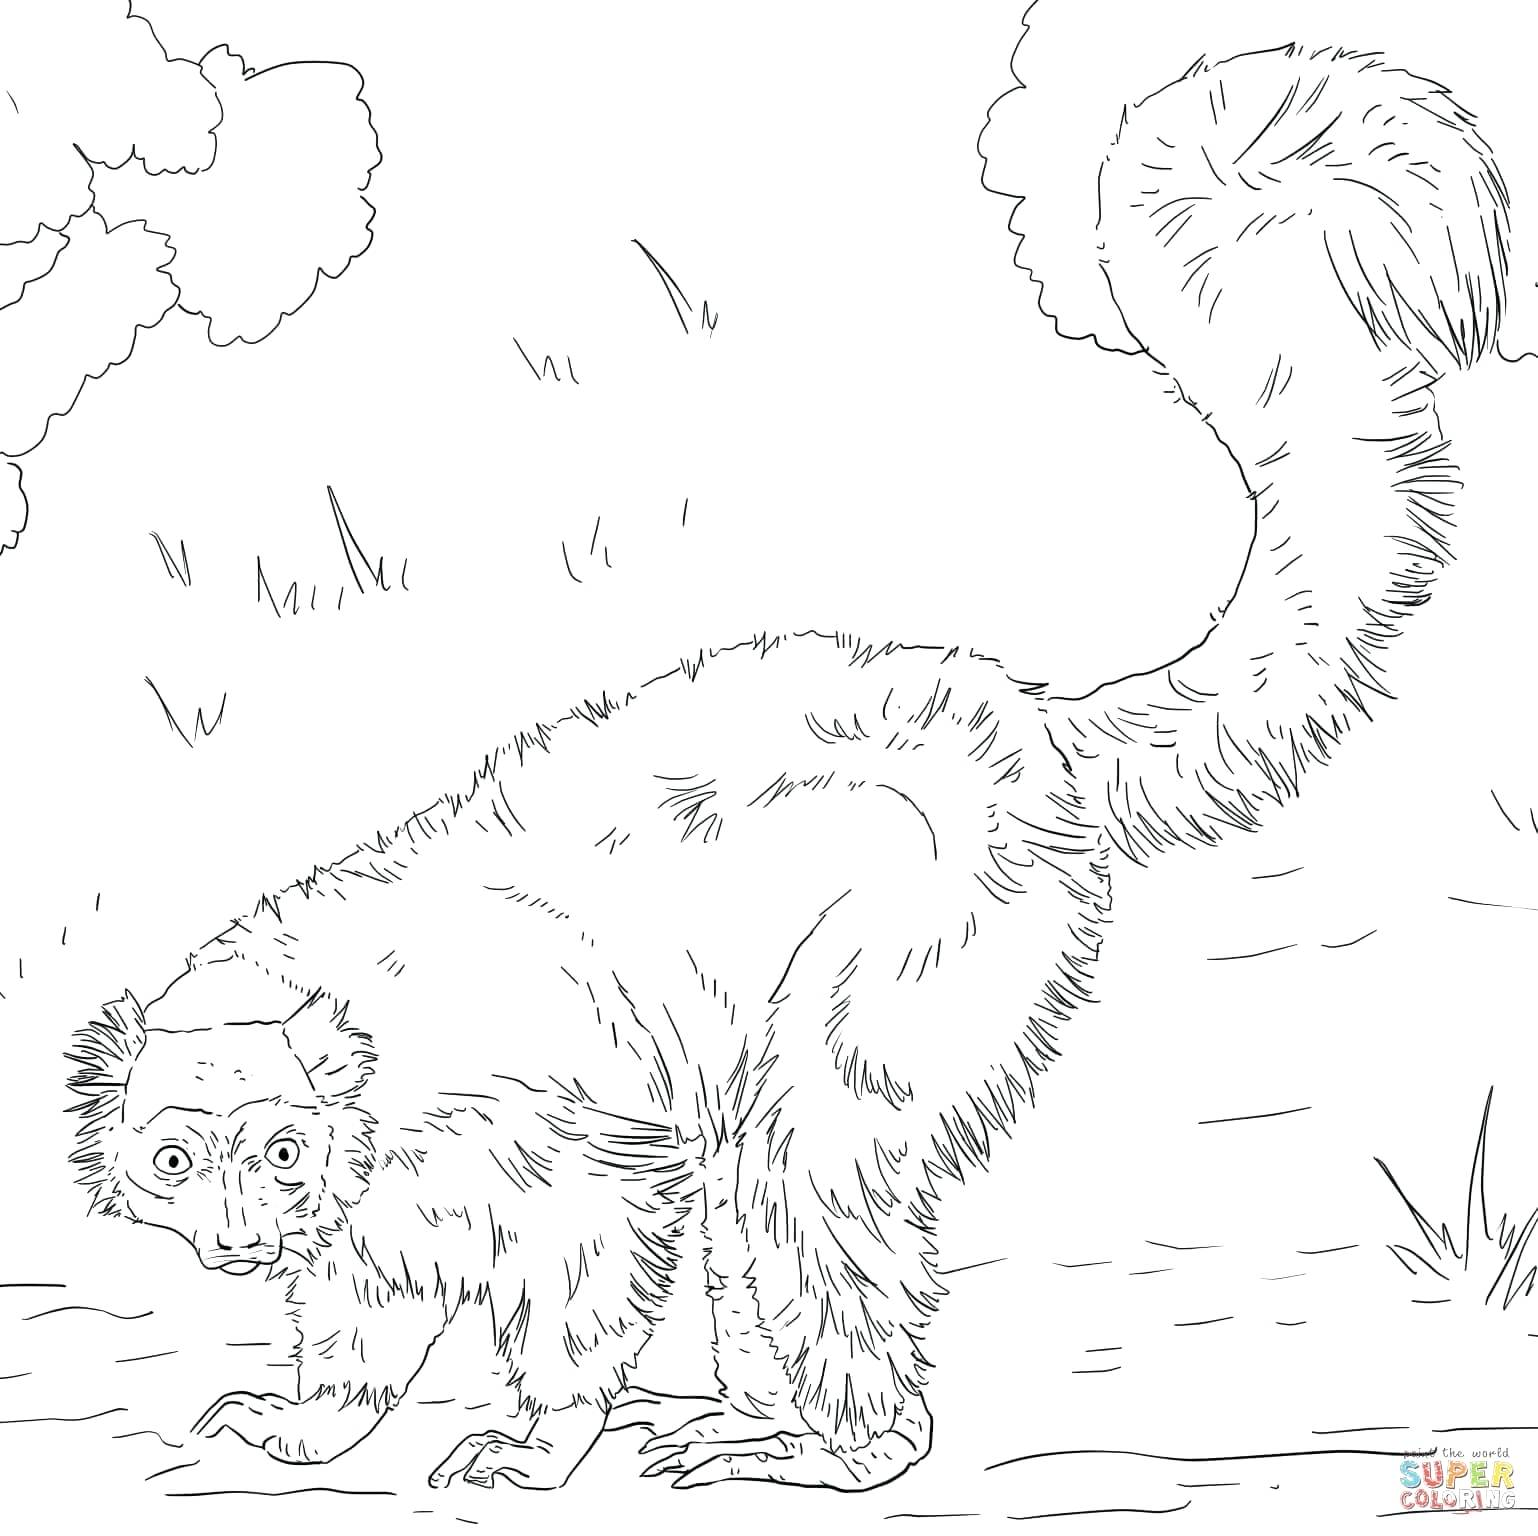 1538x1536 Coloring Red Tailed Hawk Coloring Page Ruffed Lemur Pictures. Red